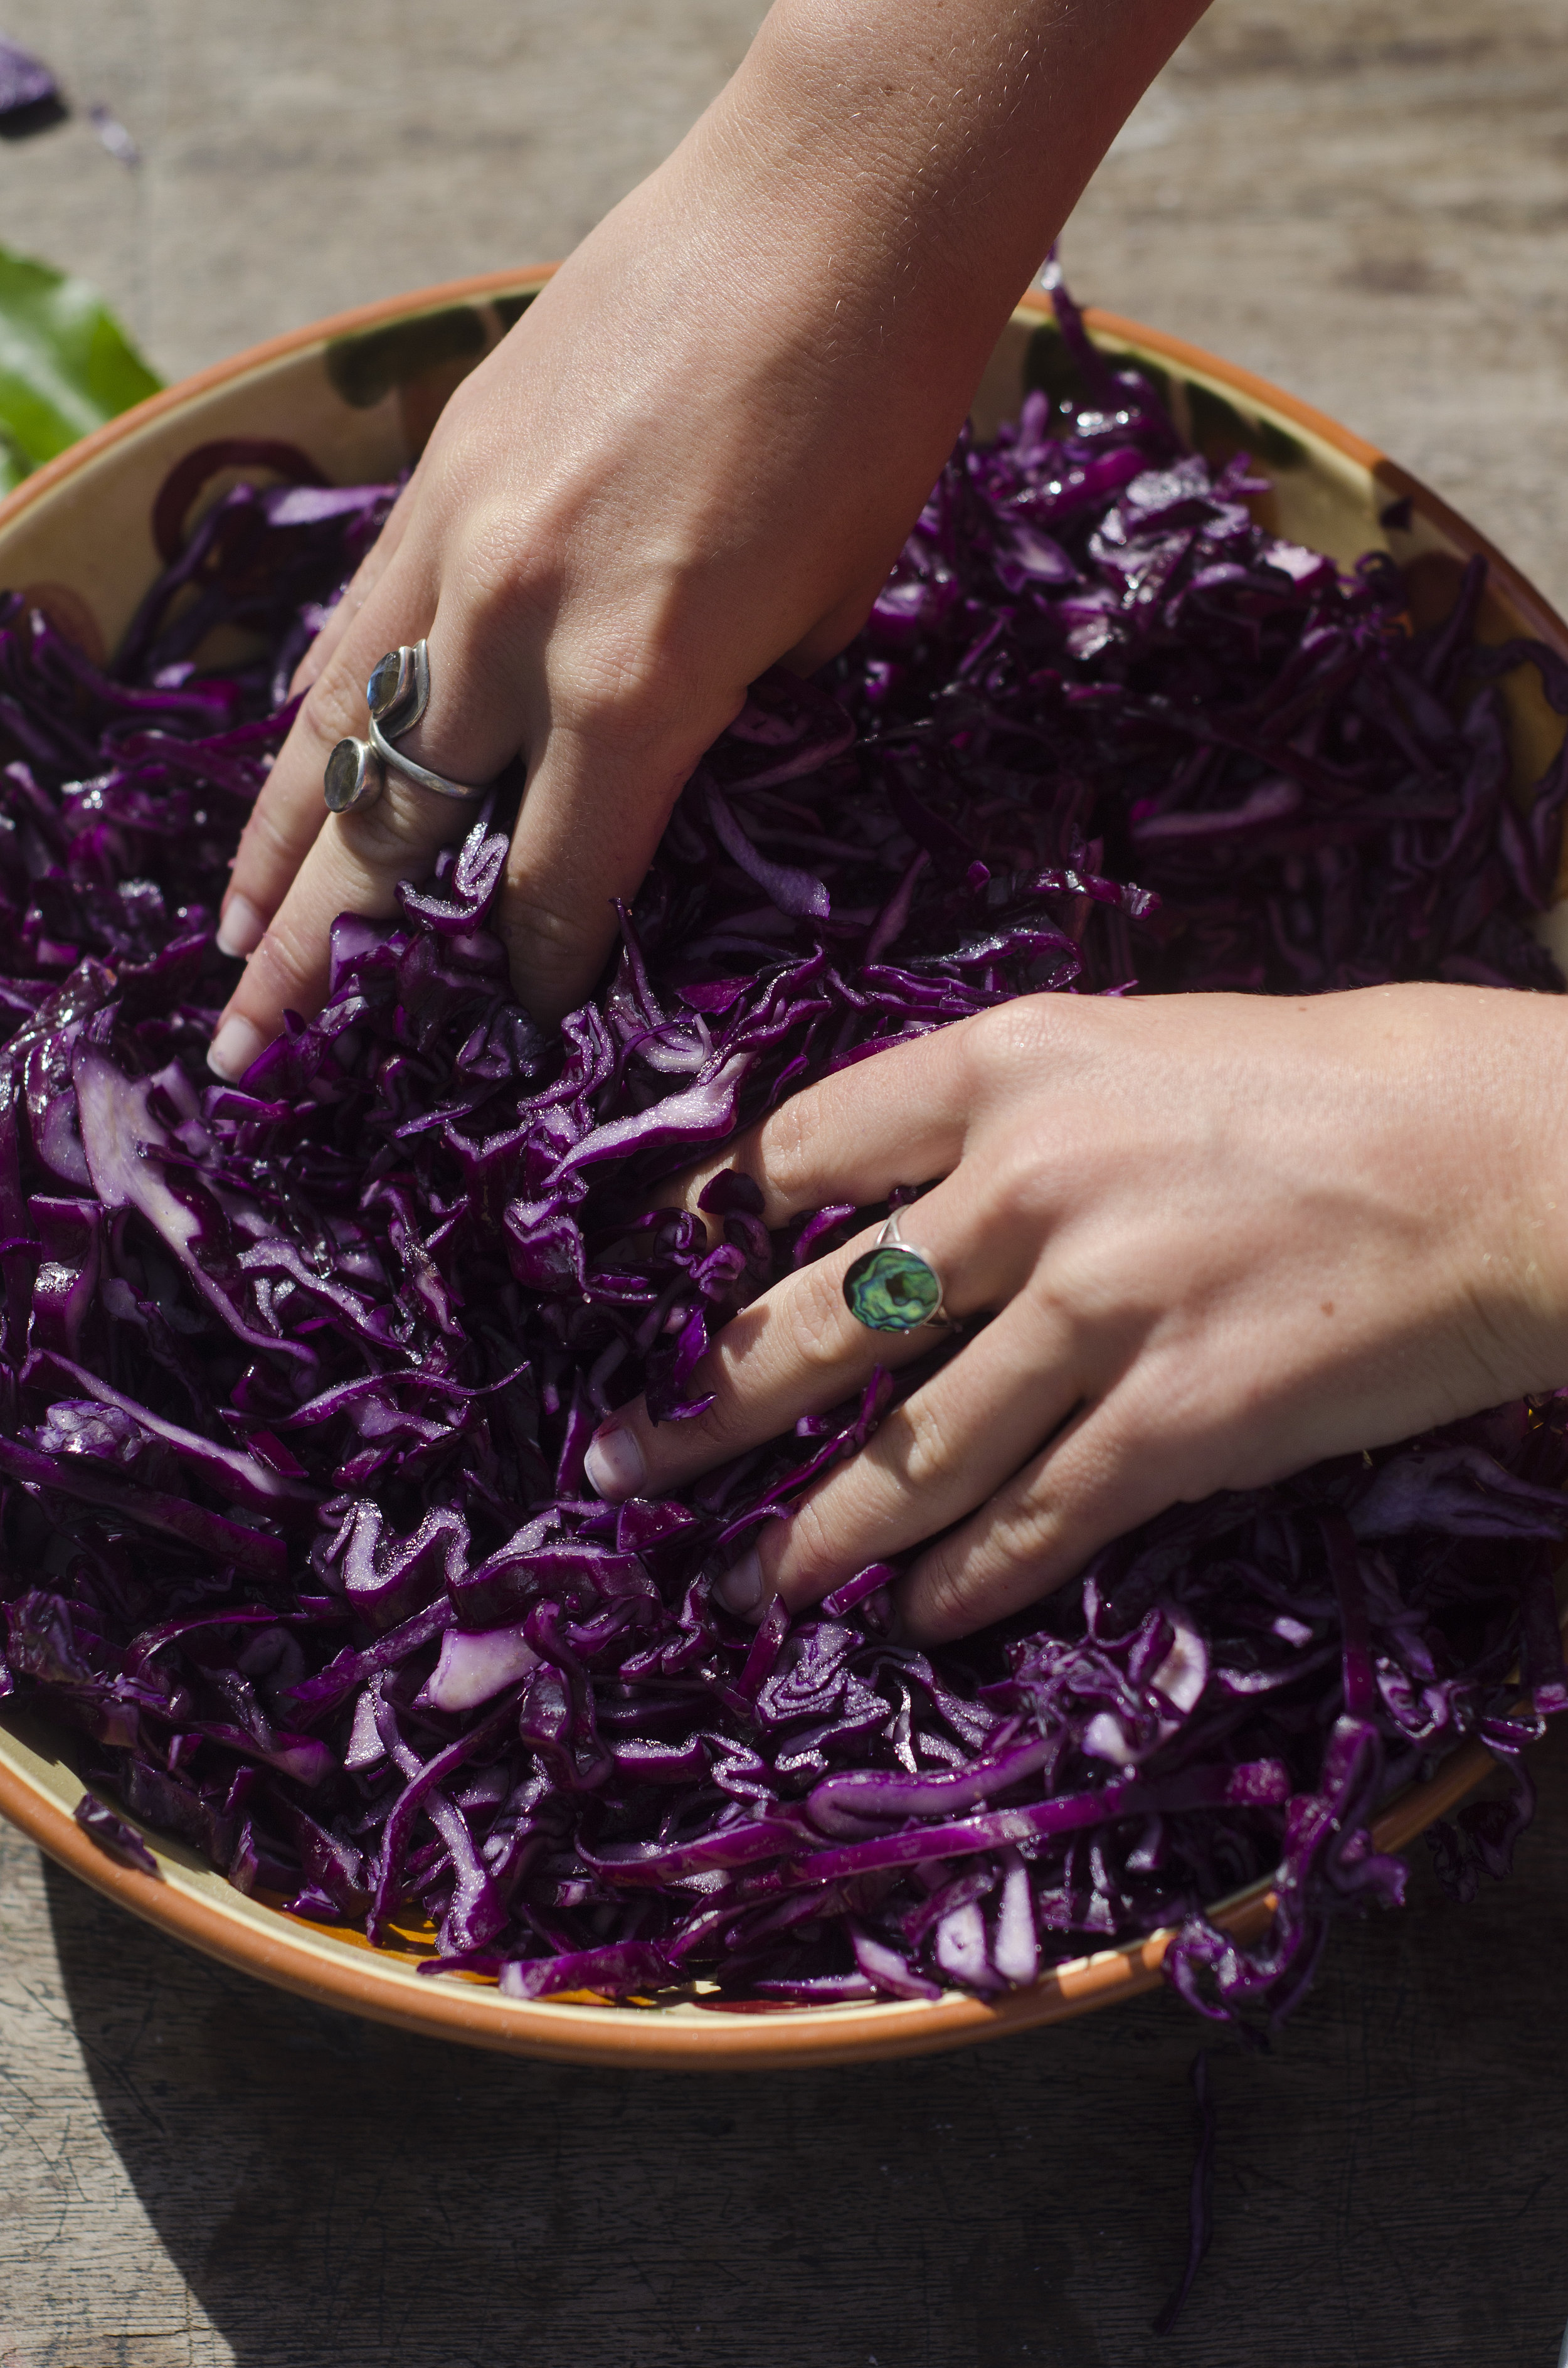 Purple Sauerkraut with Fennel